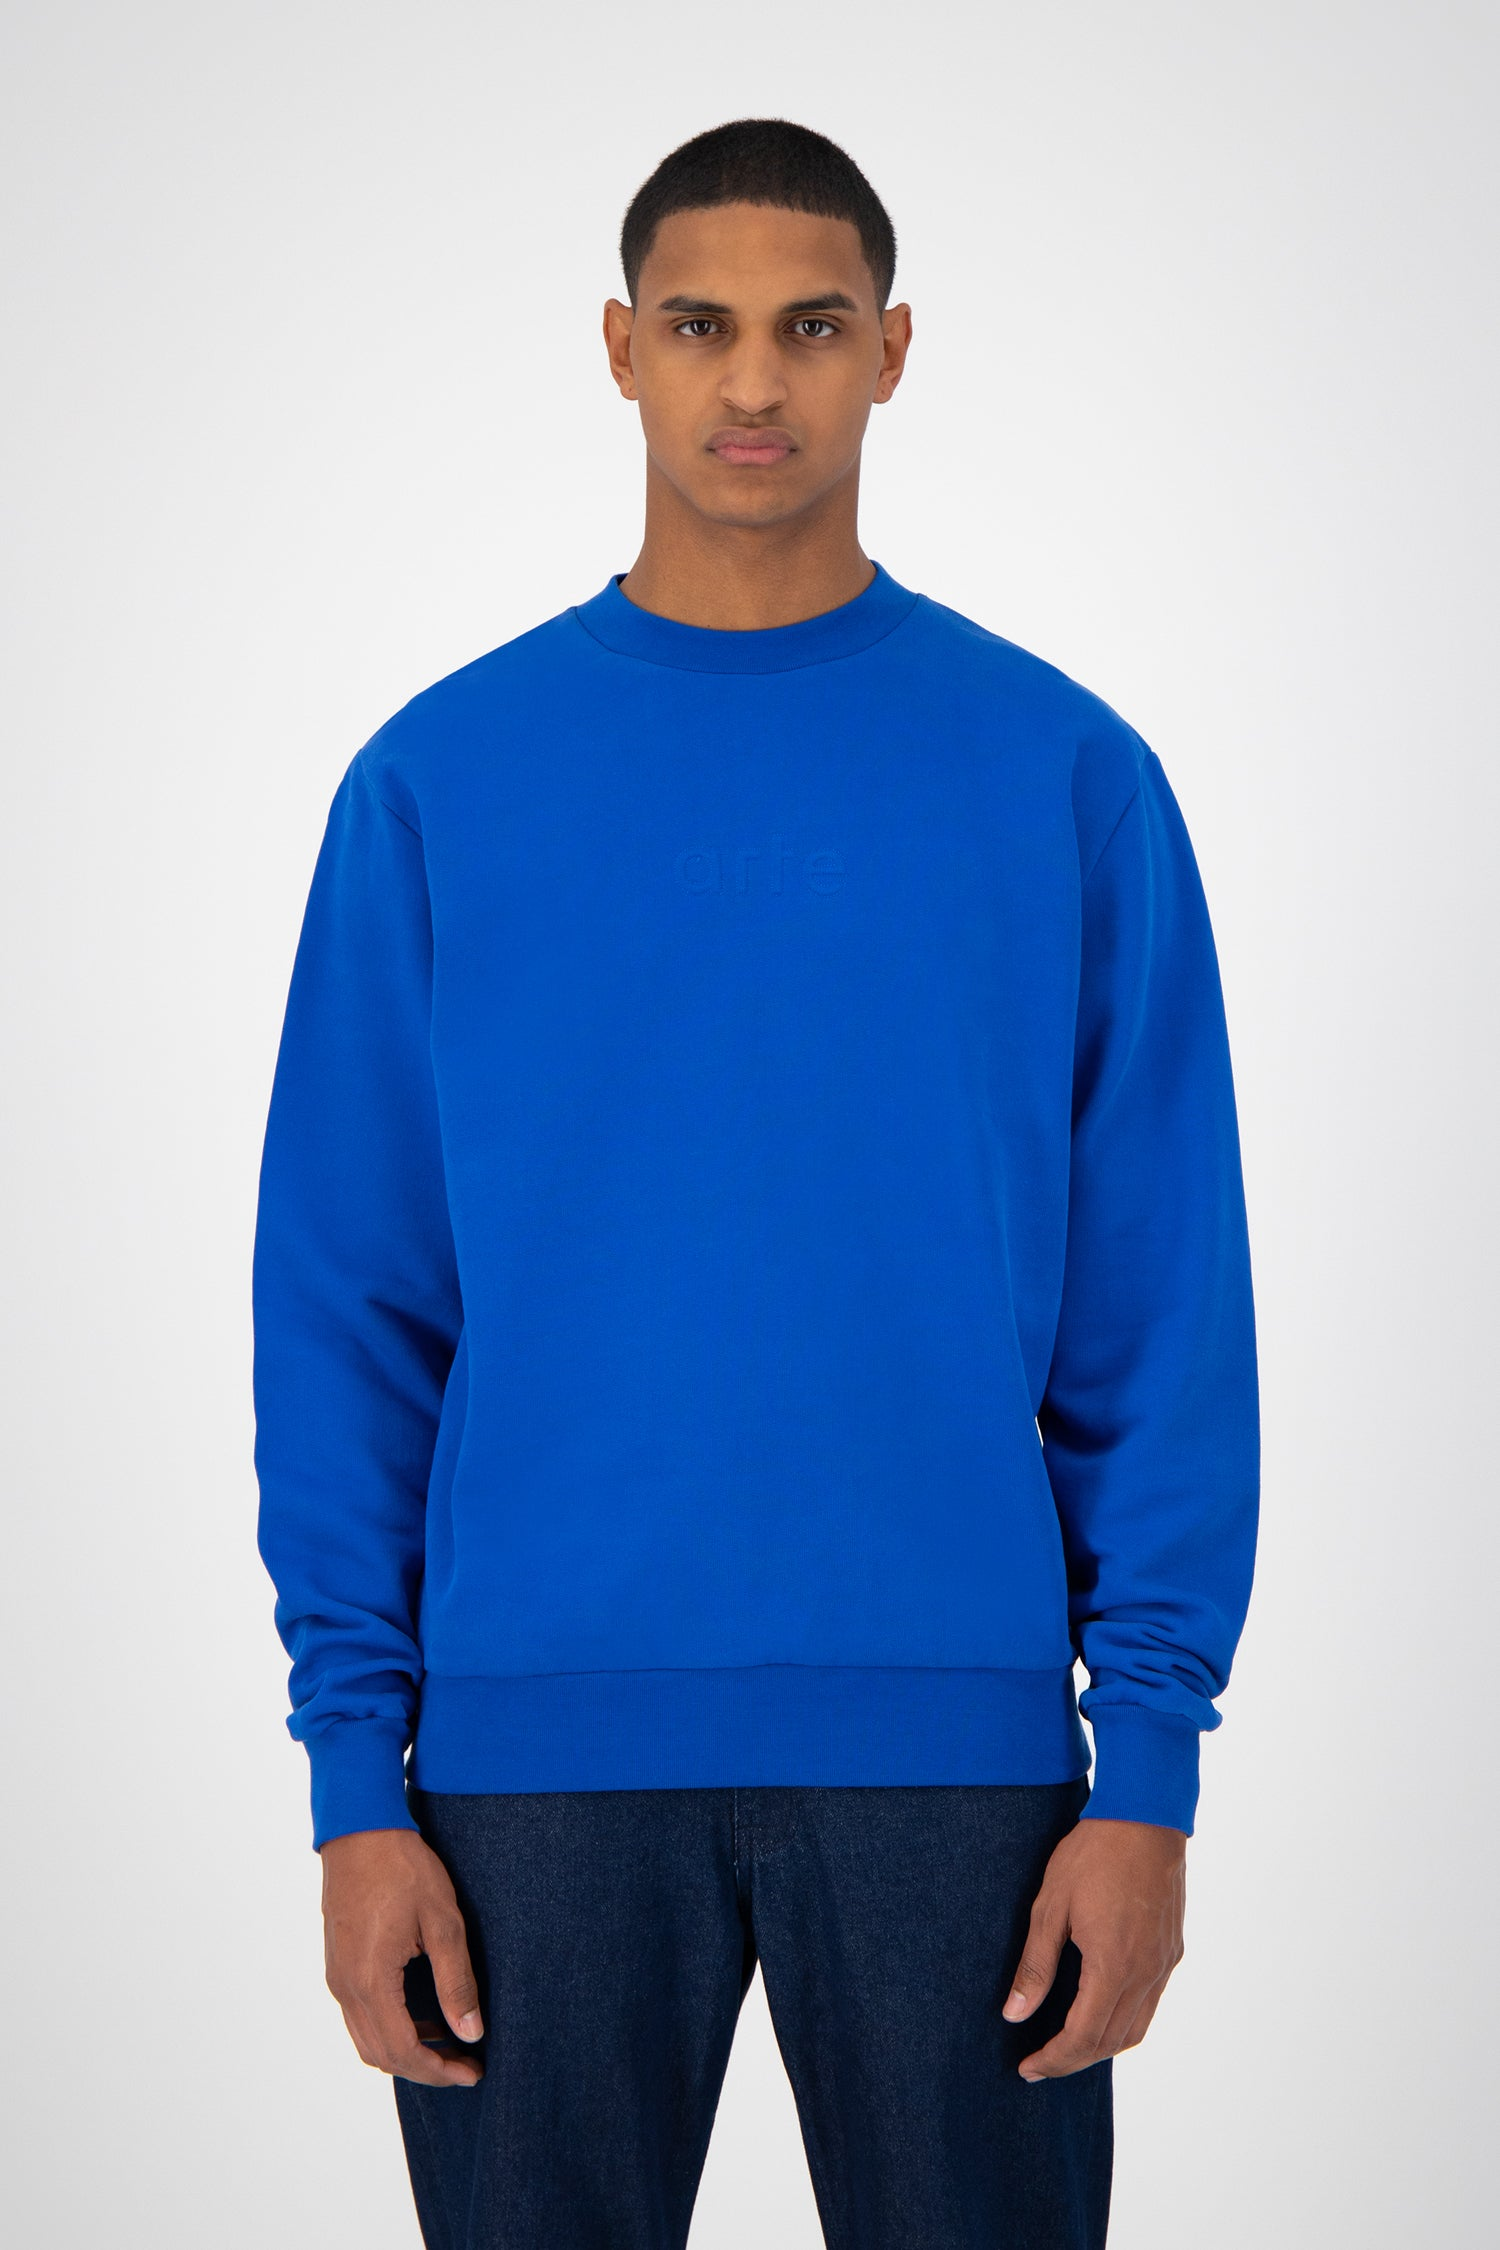 Chuck Sweater - Royal Blue